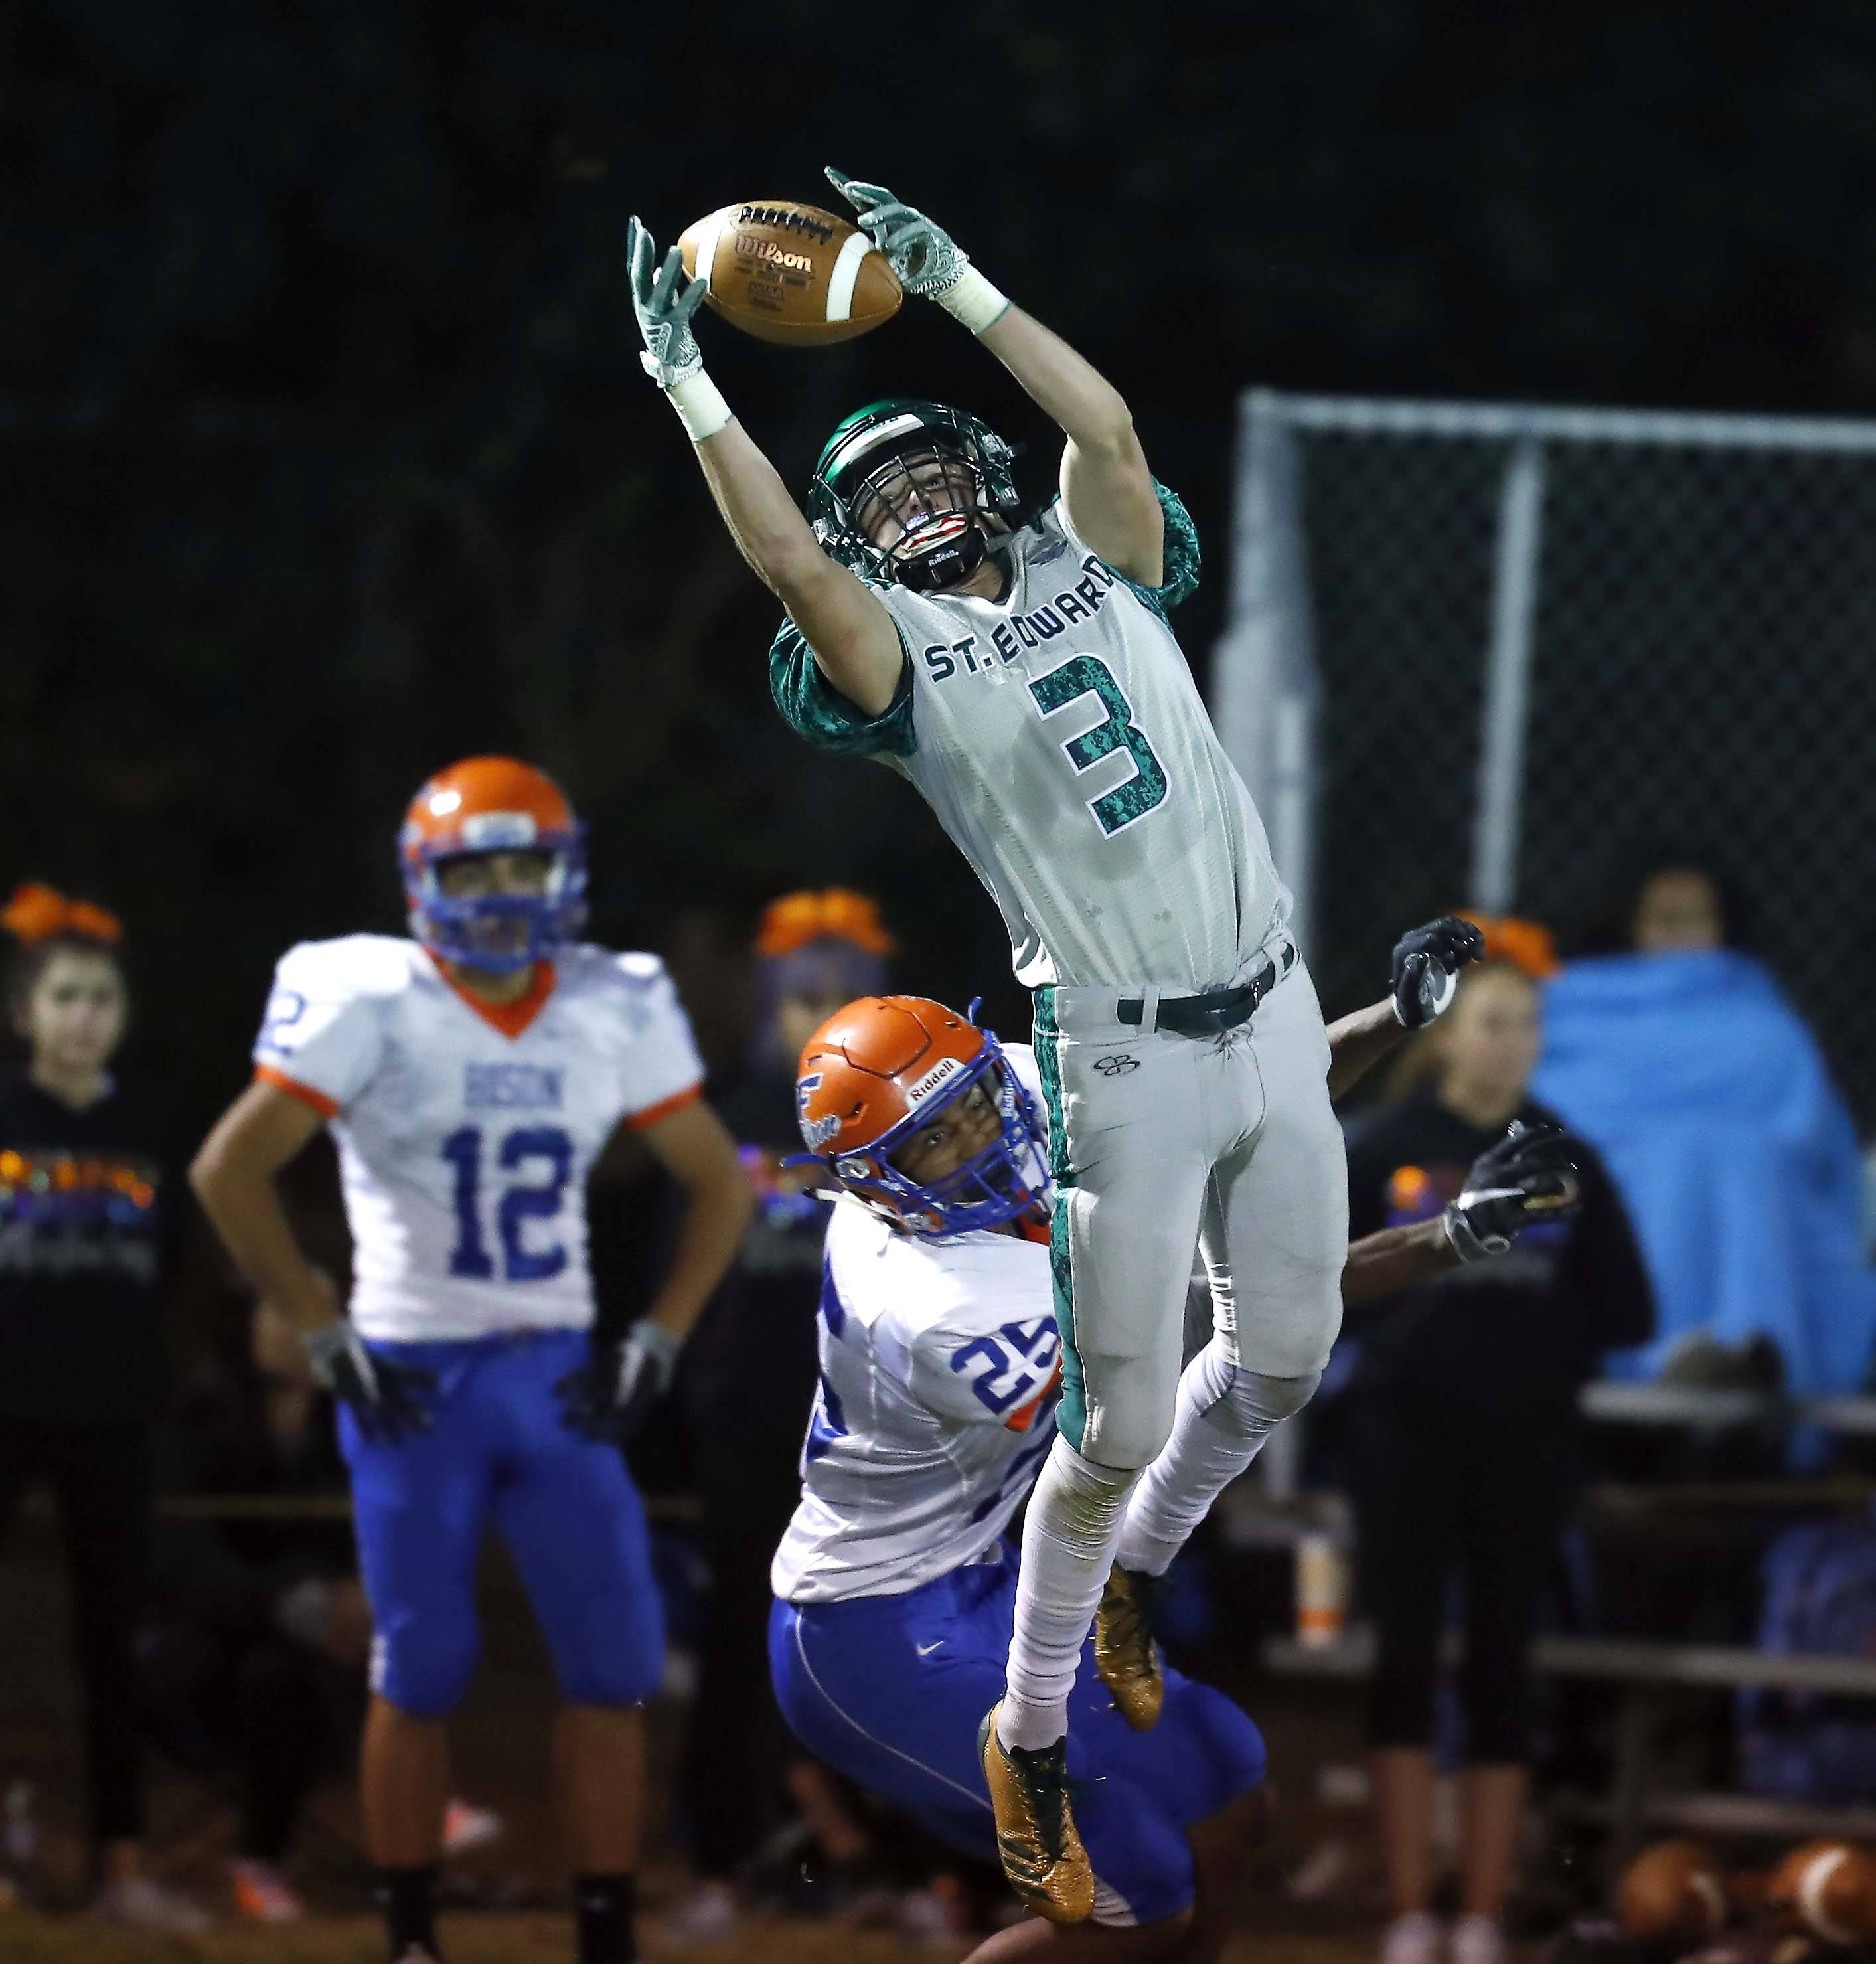 Brian Hill/bhill@dailyherald.comSt. Edward's Tyler Holte (3) hauls in a long pass for a touchdown Friday during Fenton at St. Edward football at Greg True Field in Elgin.